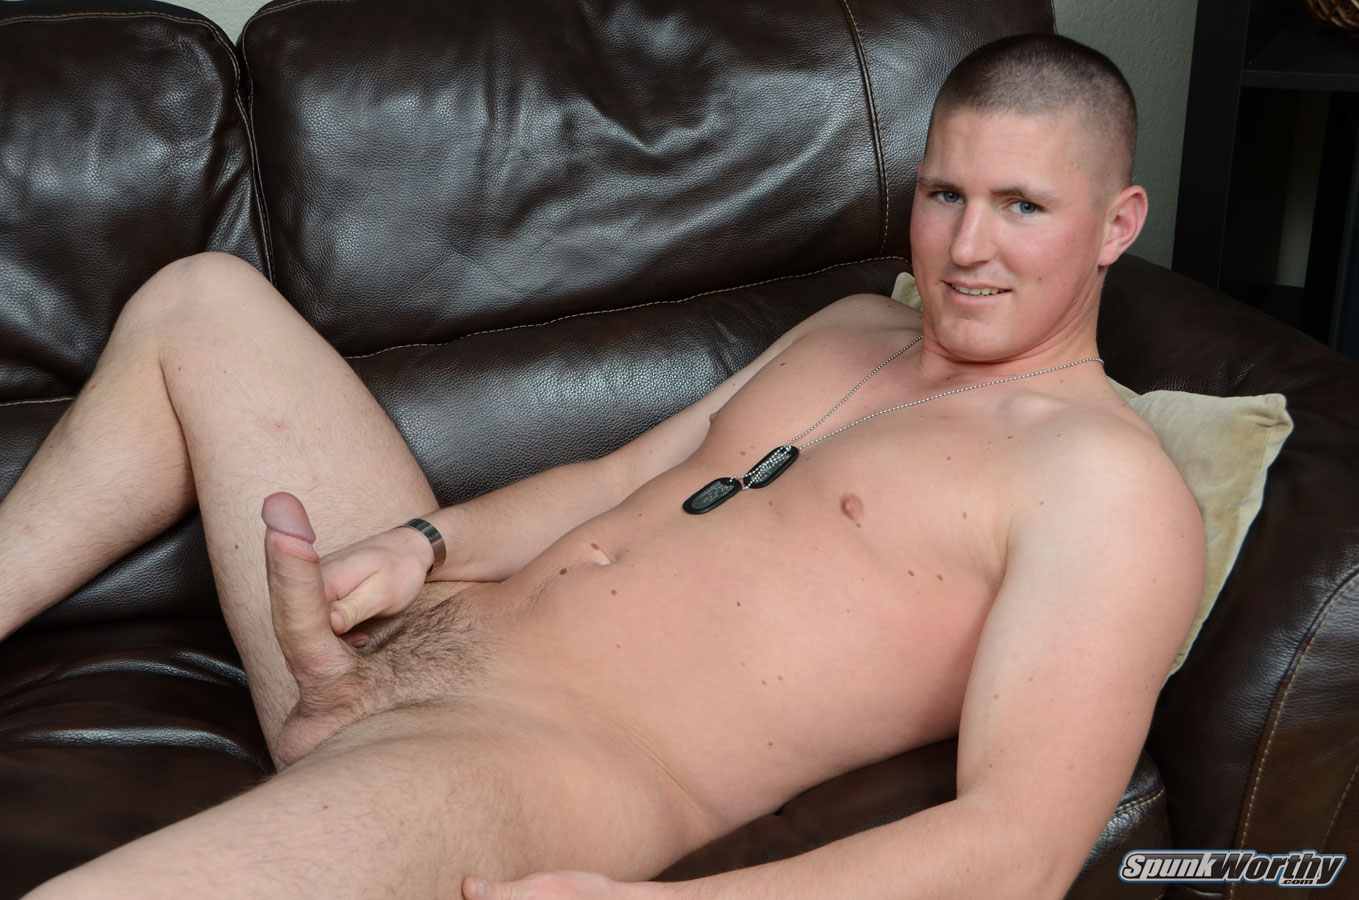 SpunkWorthy Eli Straight Marine With Big Uncut Cock Masturbating Jerking Off 16 Real Straight Marine With Huge Uncut Cock Shoots His Cum Load